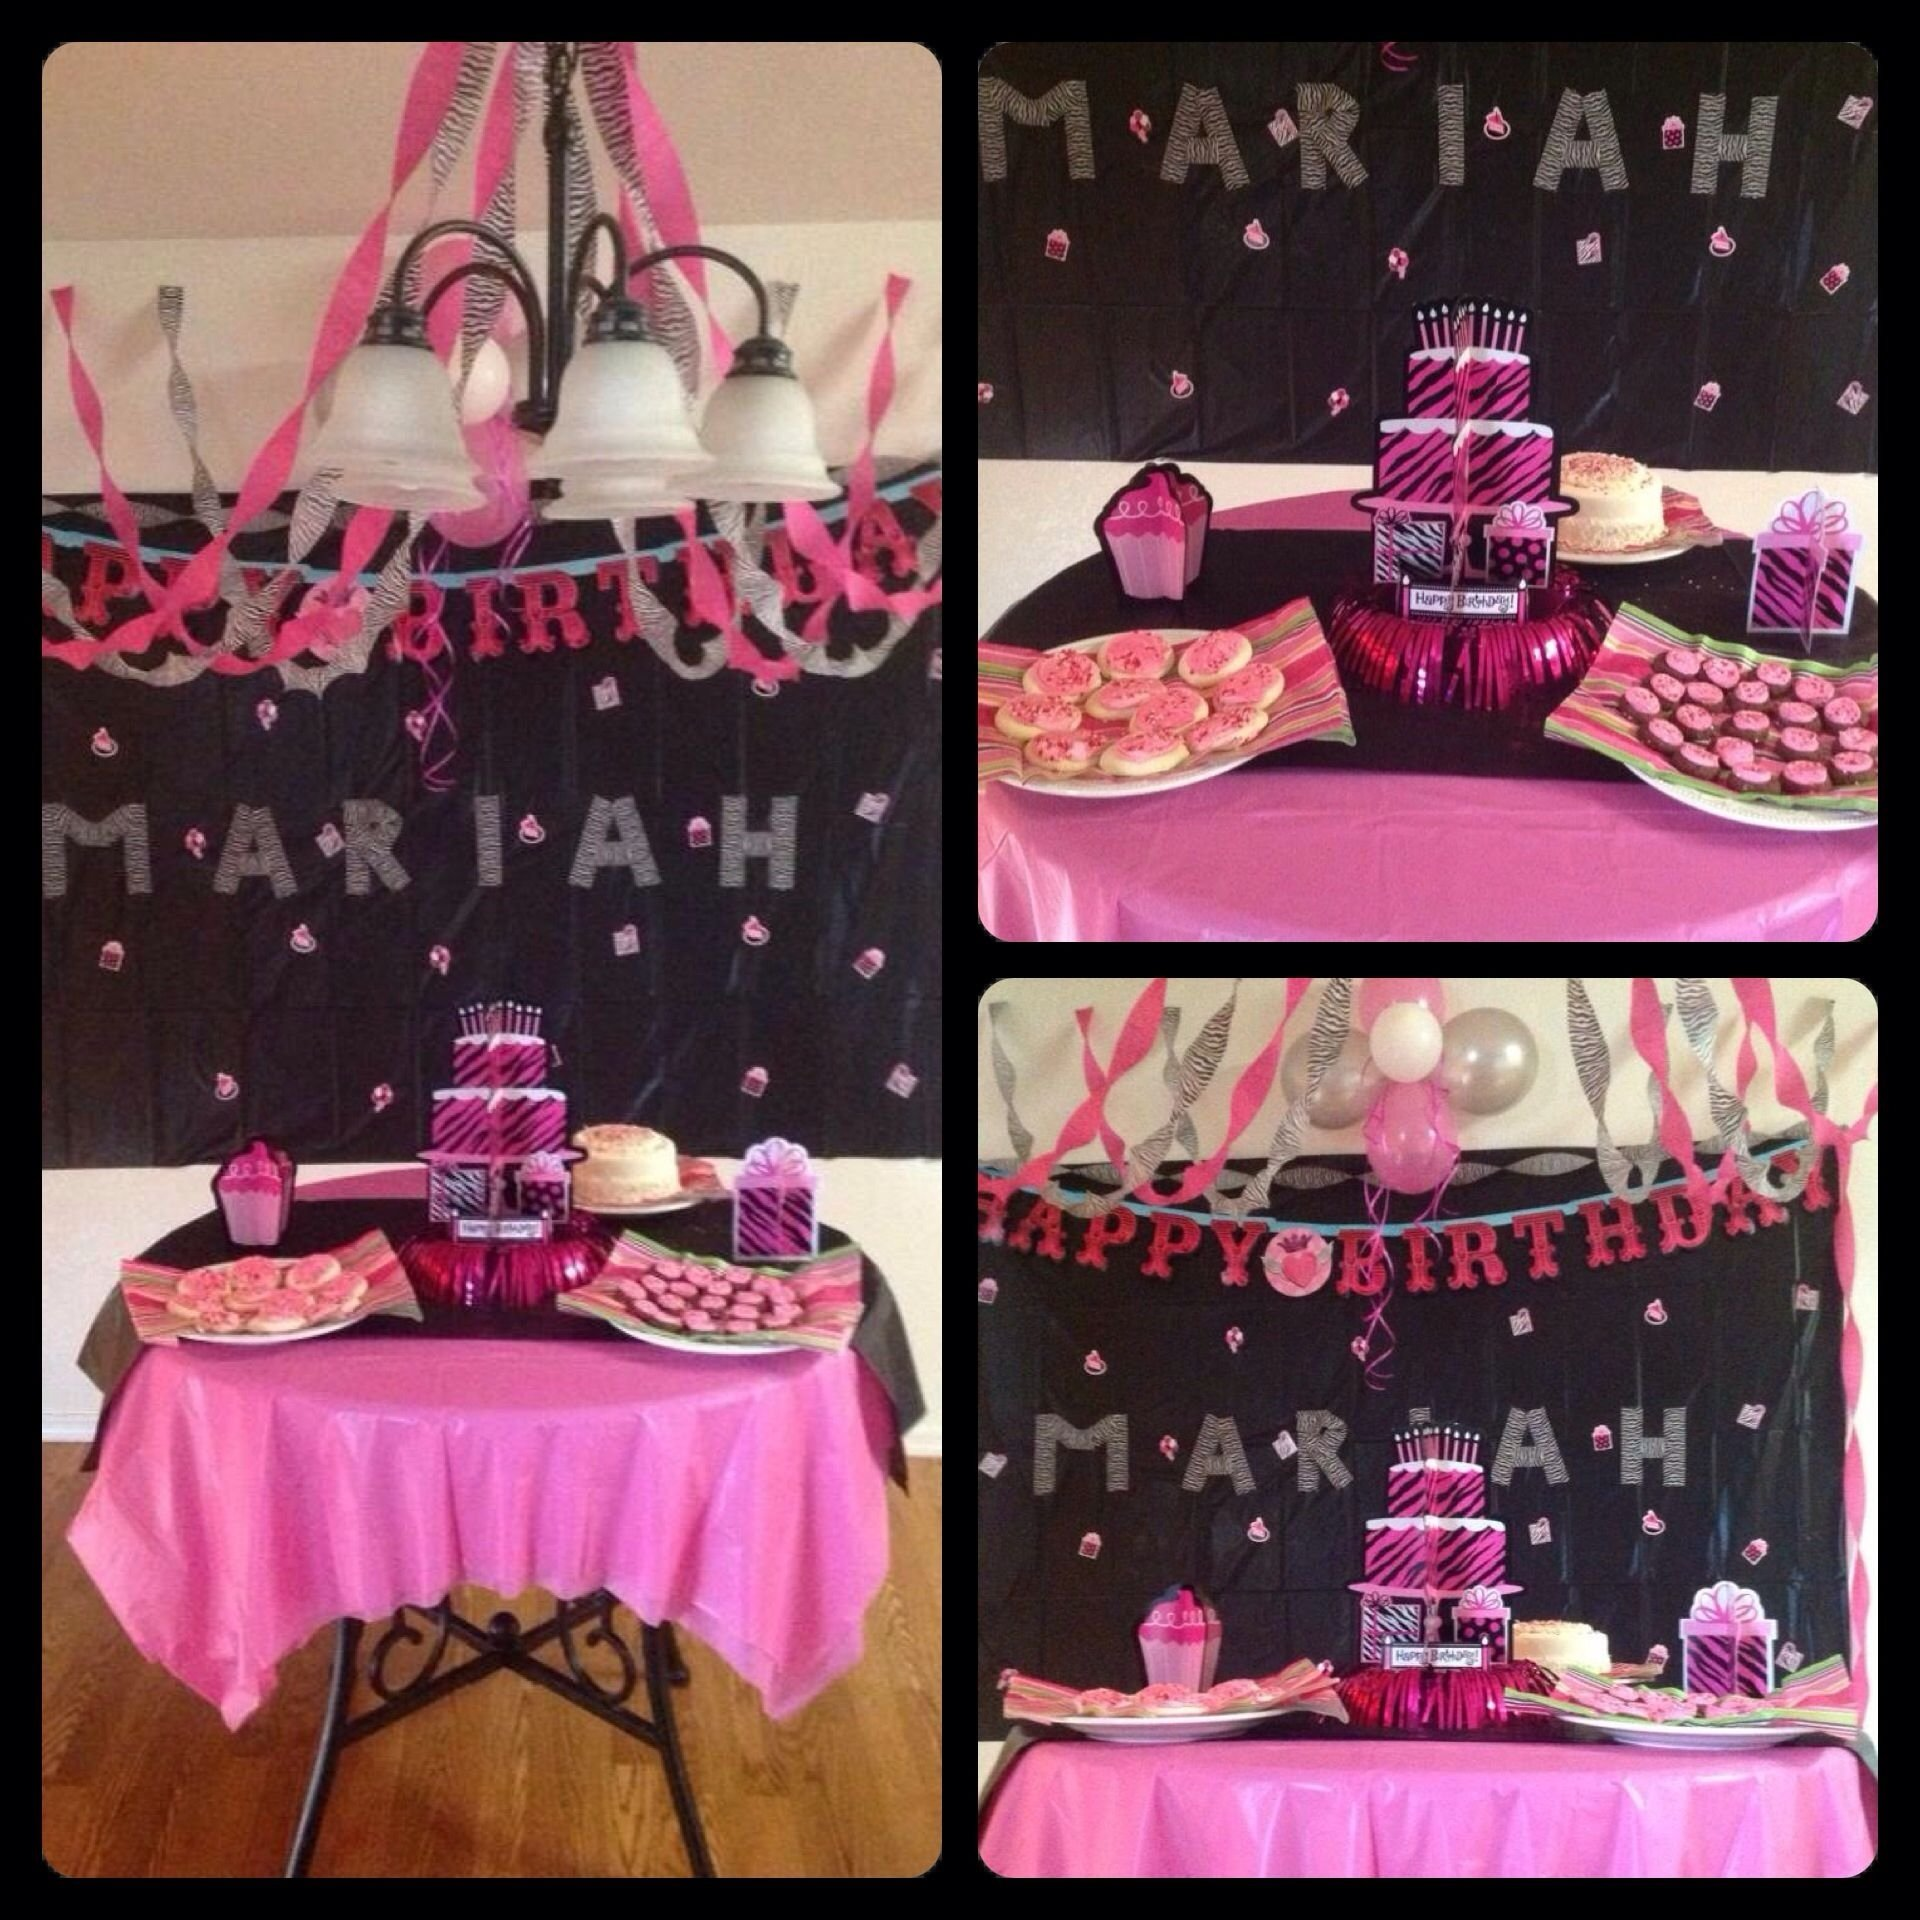 party ideas! had my 10 year old celebrate her birthday with some